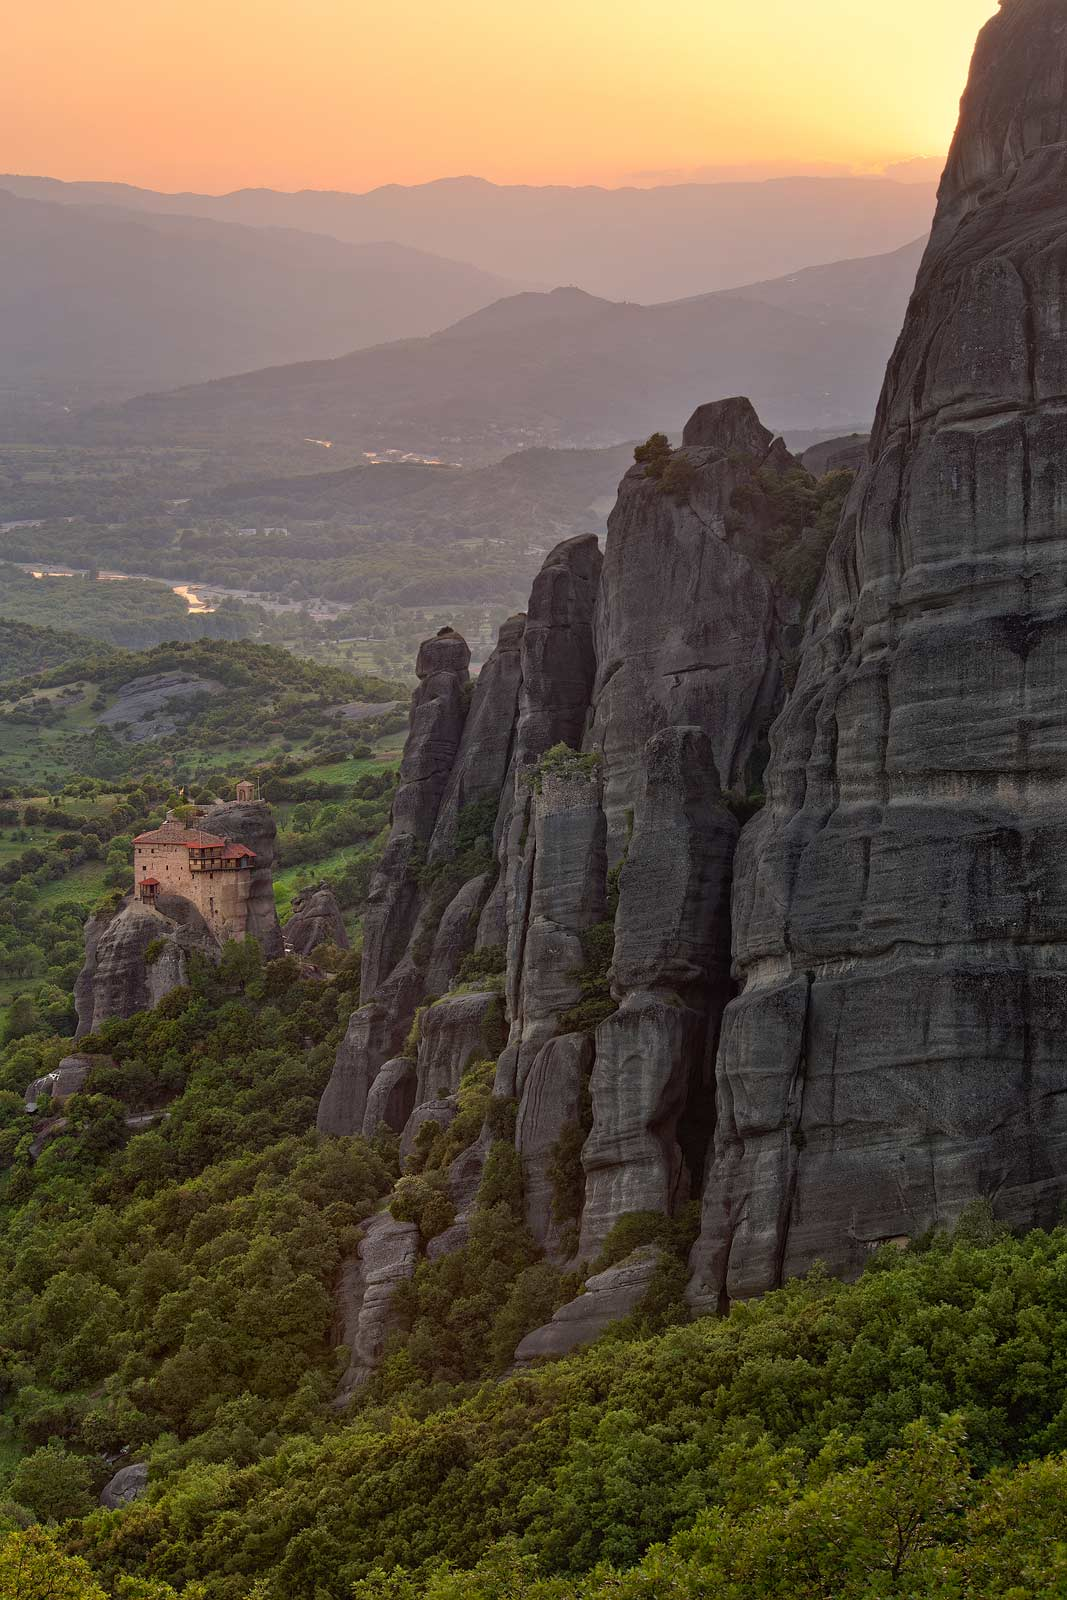 Holy Monastery of St. Nicholas Anapafsas, the smallest monastery at Meteora at sunset. Meteora, Thessaly, Greece - Meteora-Monasteries-Greece - Mike Reyfman Photography